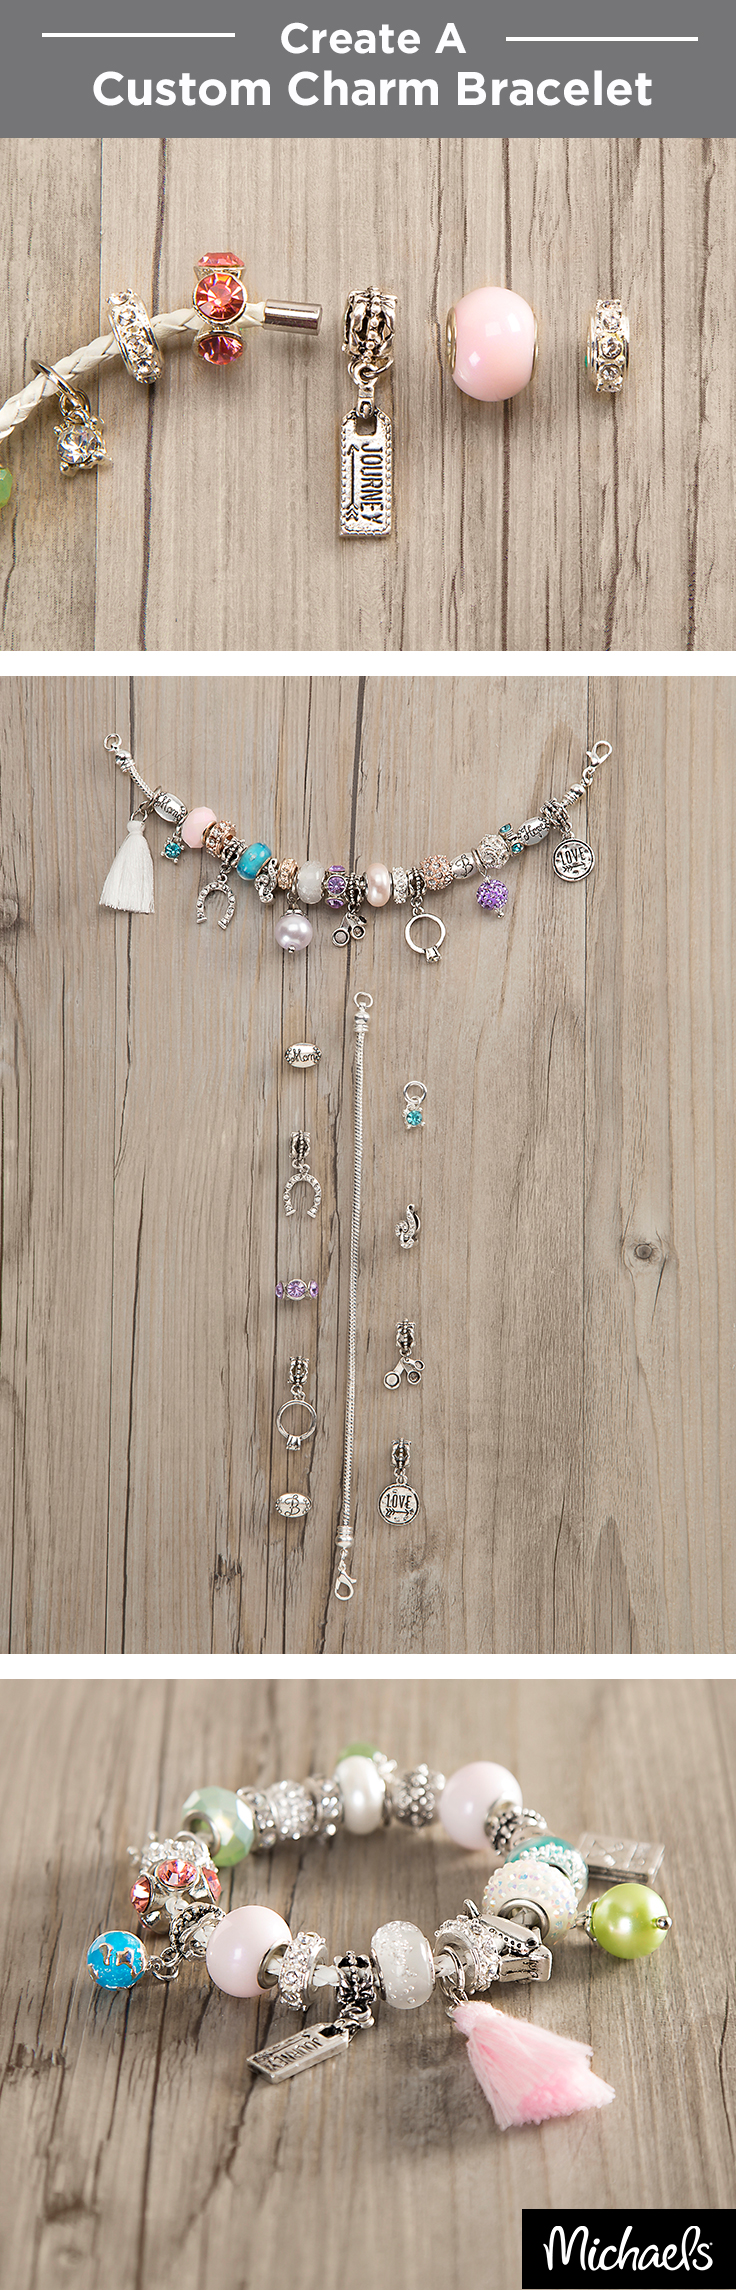 Bead landing crafting beads - Create A Custom Charm Bracelet With Bead Landing Bits Baubles Glass Beads And